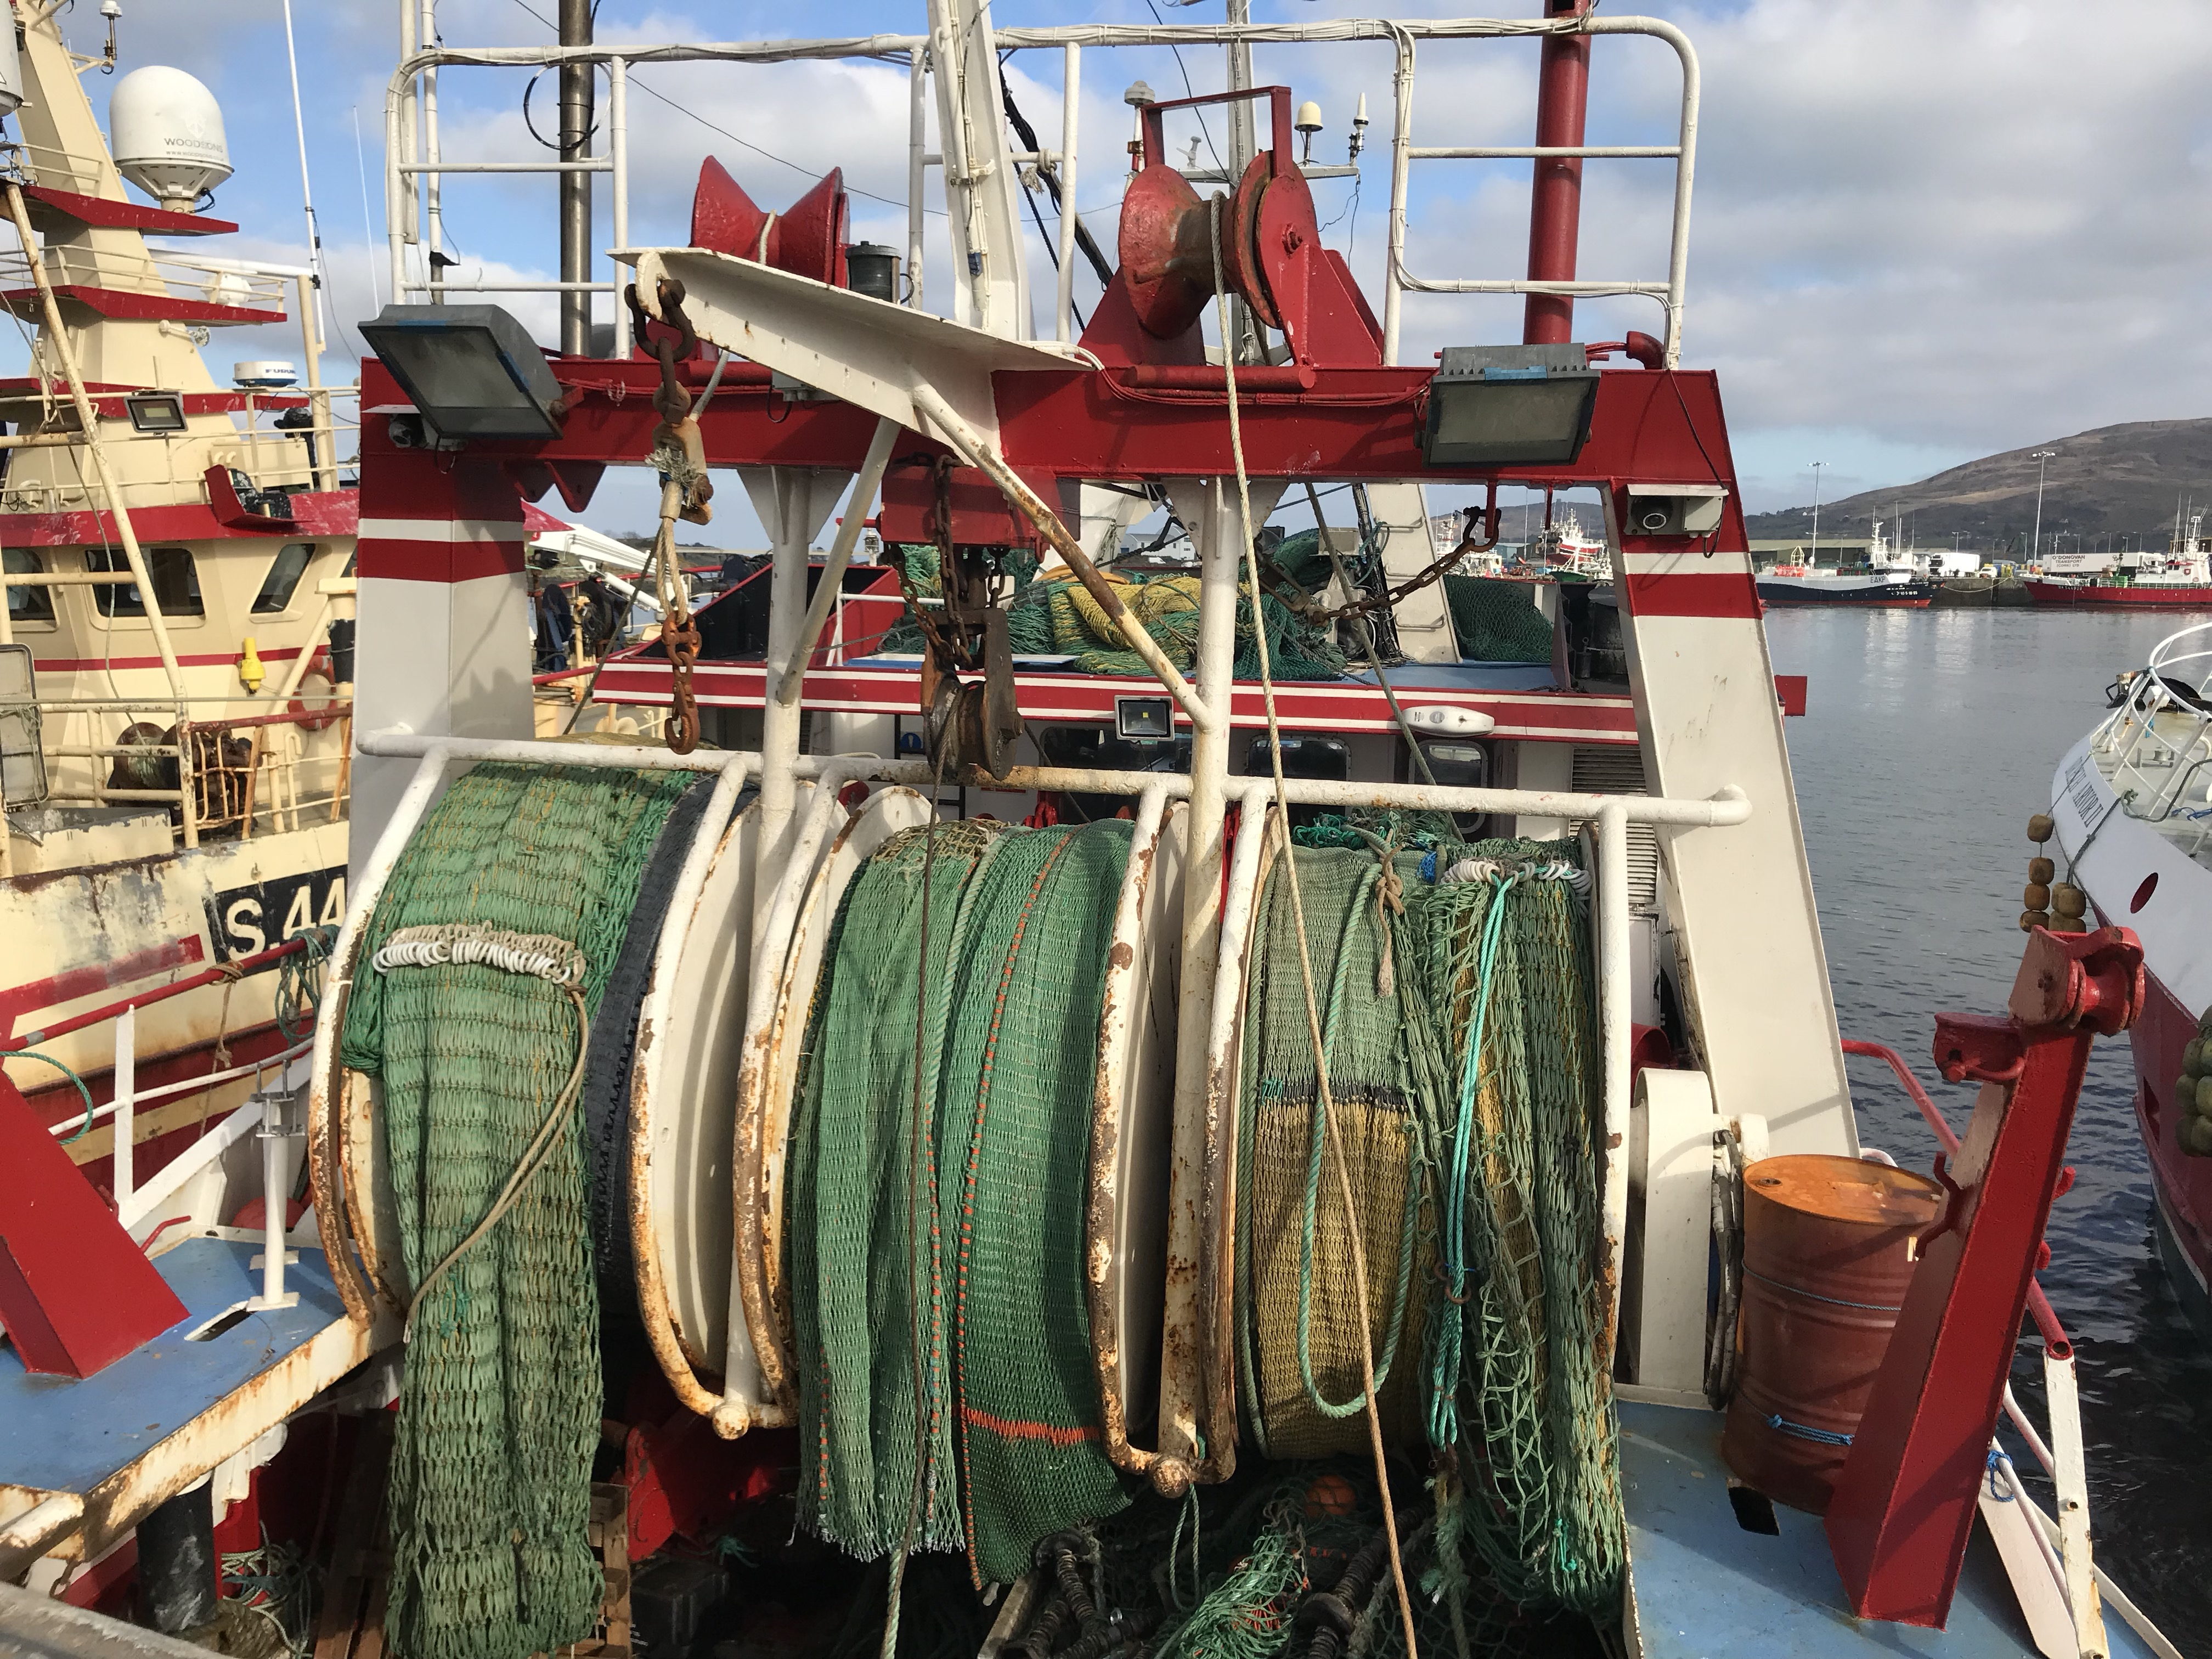 Large spools of green fishing net on the back of a fishing boat